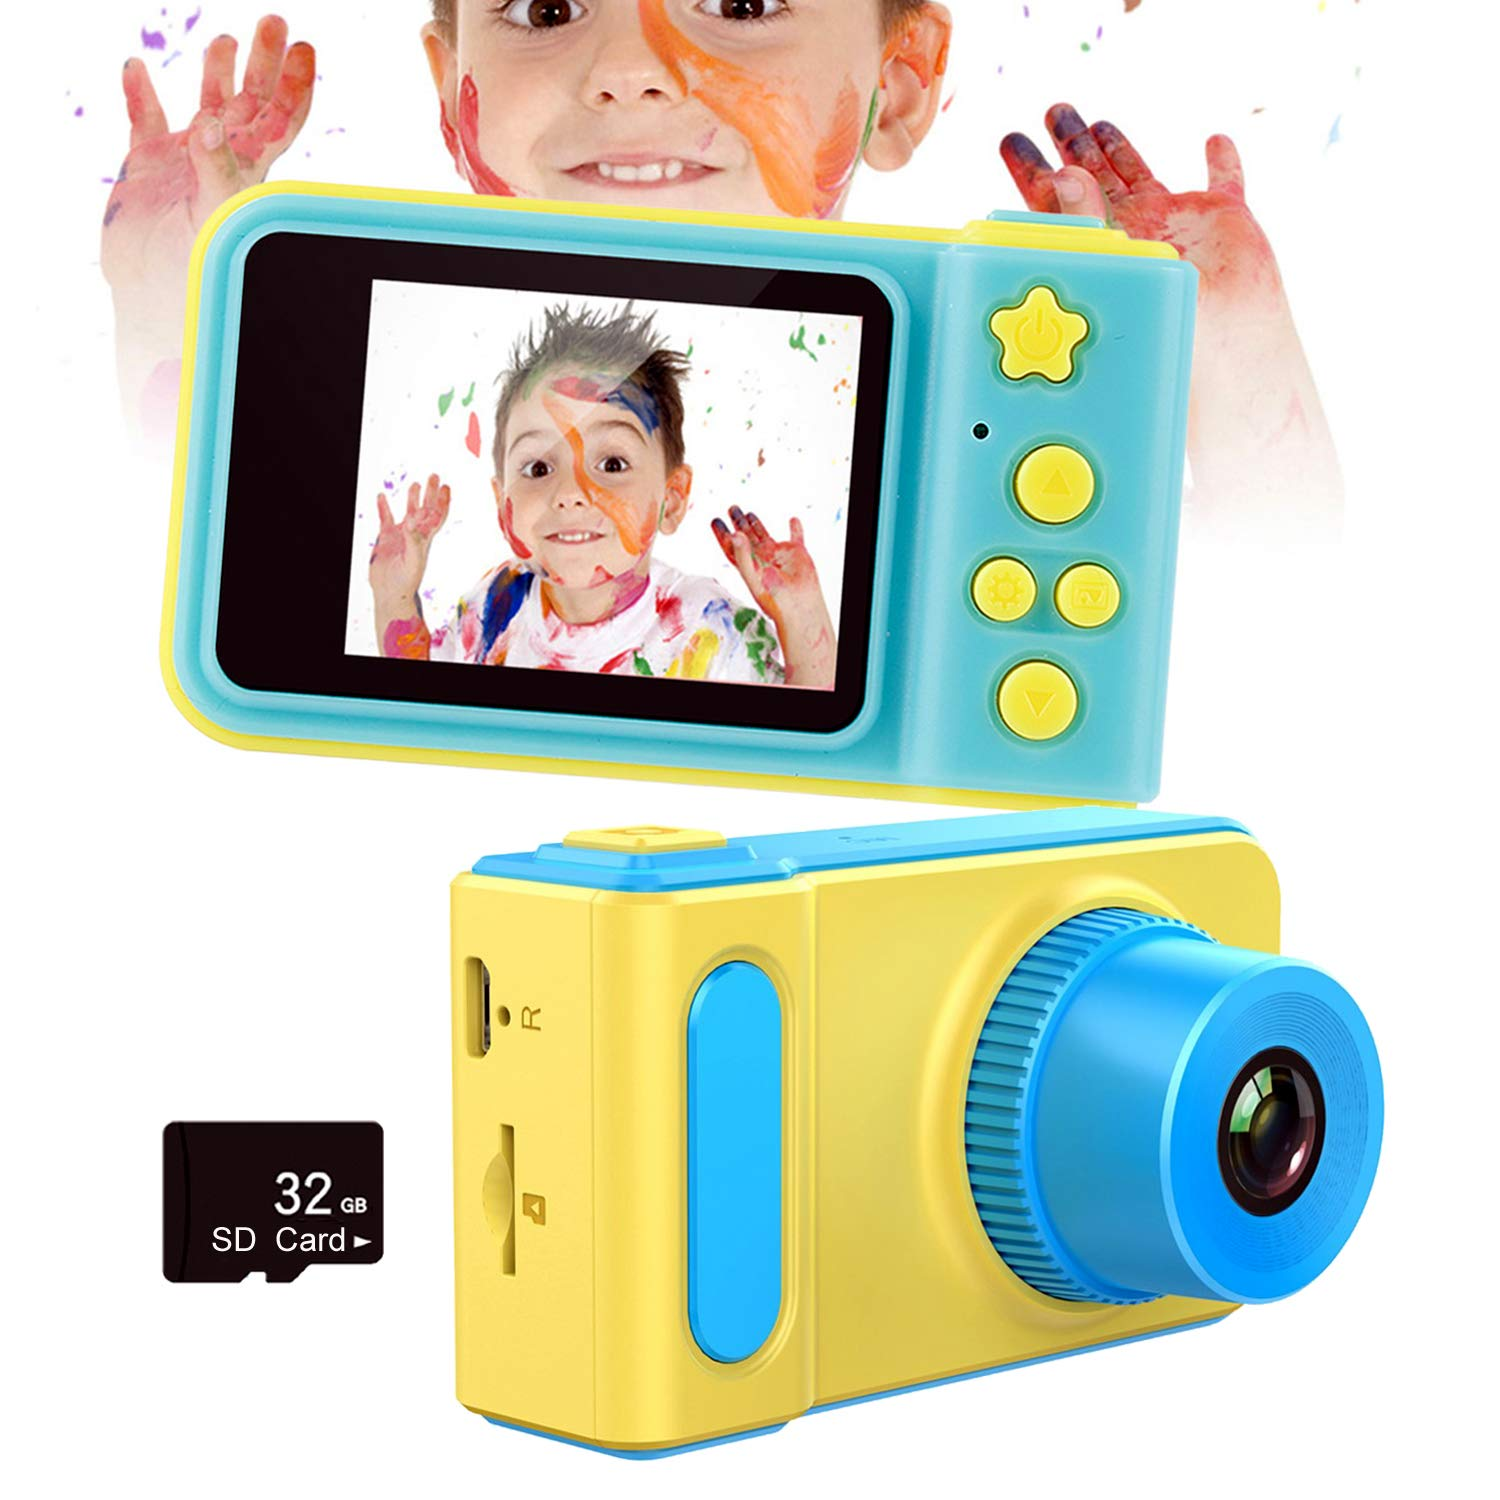 Mrocioa Kids Digital Camera with 32GB SD Card,Mini Camera Toys for Girls and Boys 3-8 Year Old,1080P HD Video Recorder,2'' LCD Screen,USB Rechargeable (Blue)